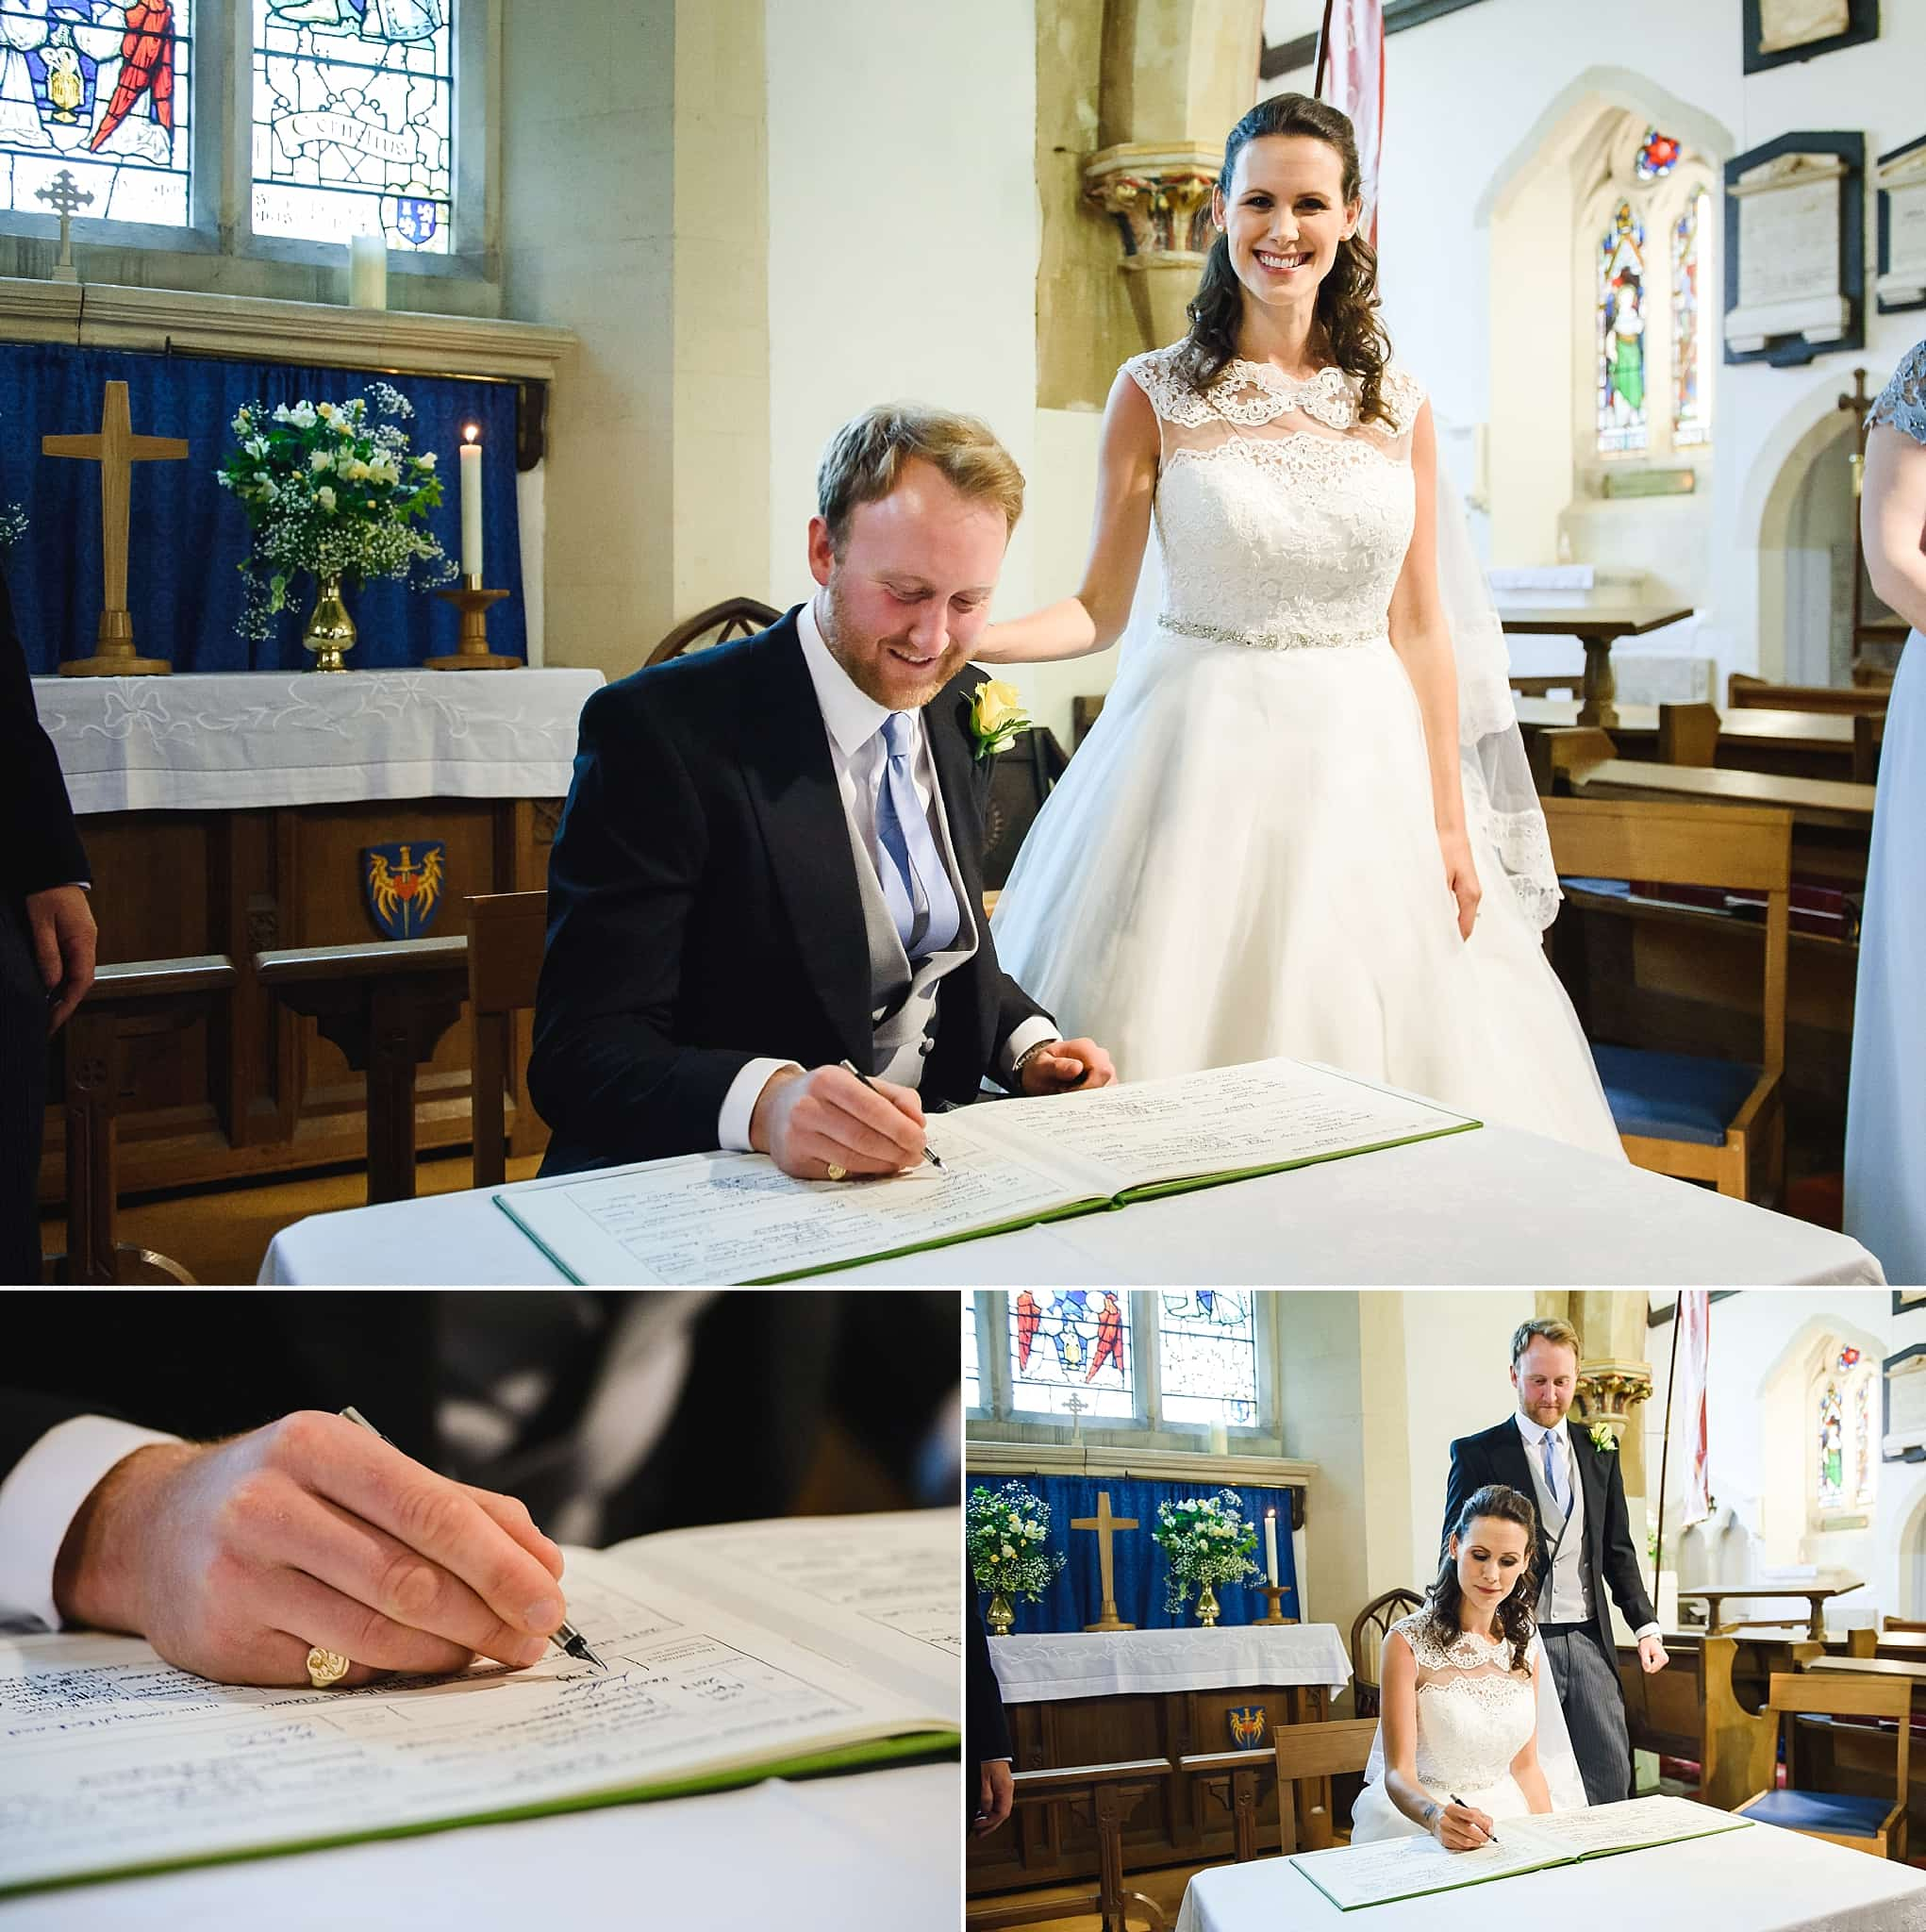 Bride and groom sign the register at St Swithins church, Bathford